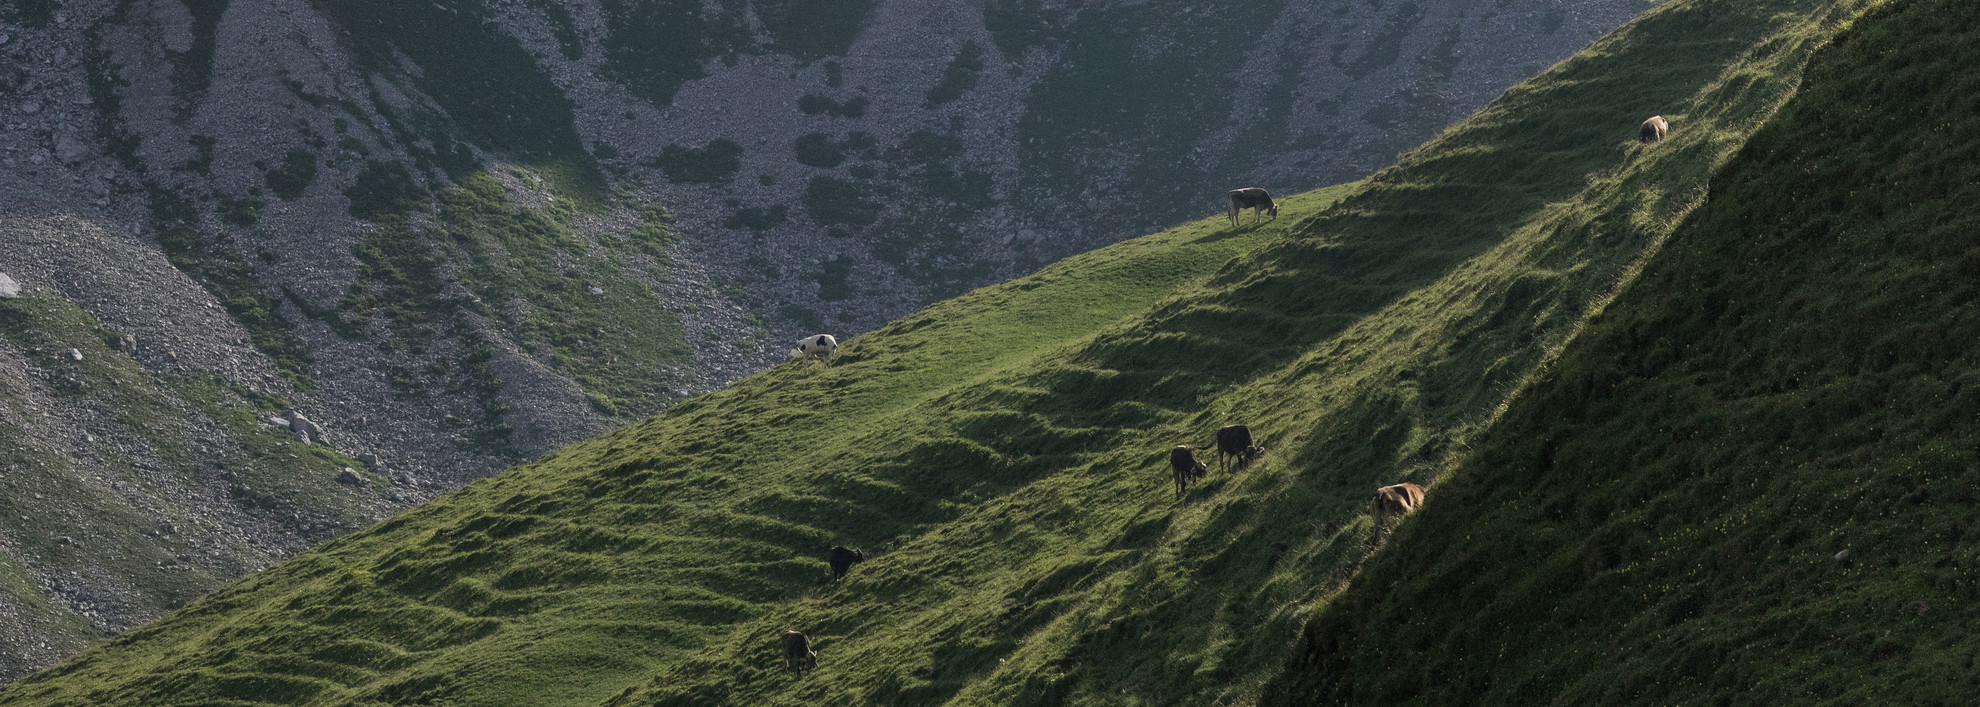 Cows on the Hochalpe | © Kleinwalsertal Tourismus eGen | Photographer: Andre Tappe